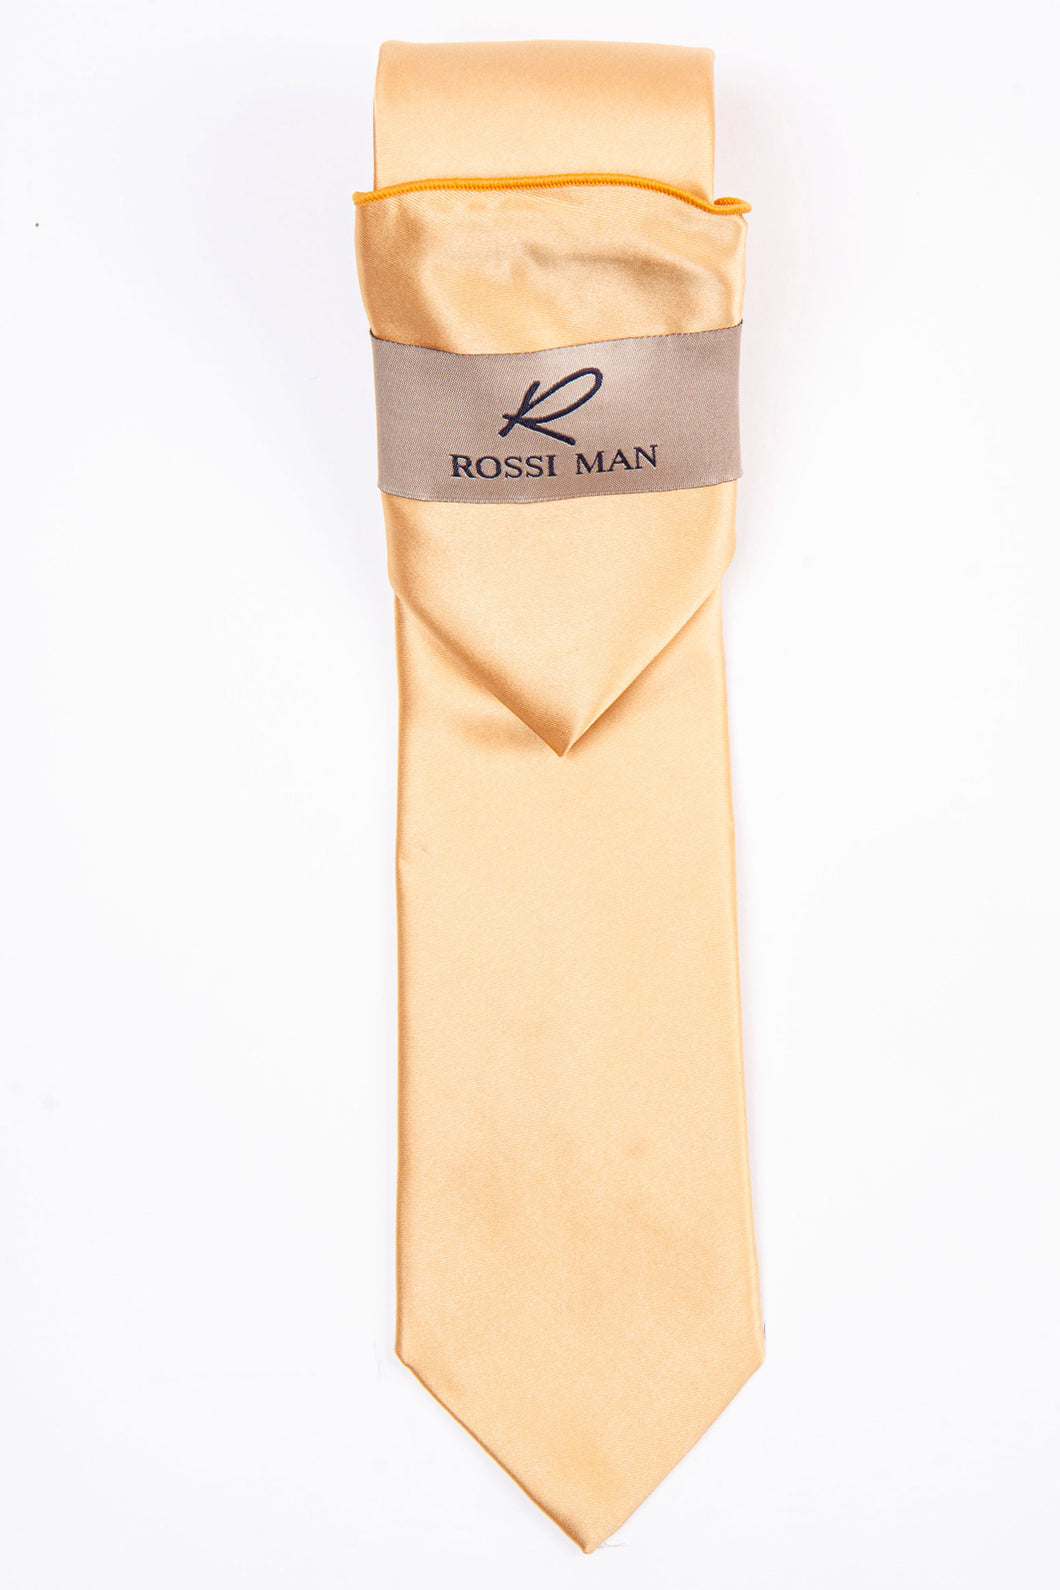 Rossi Man Tie and Pocket Round - RMR665-11